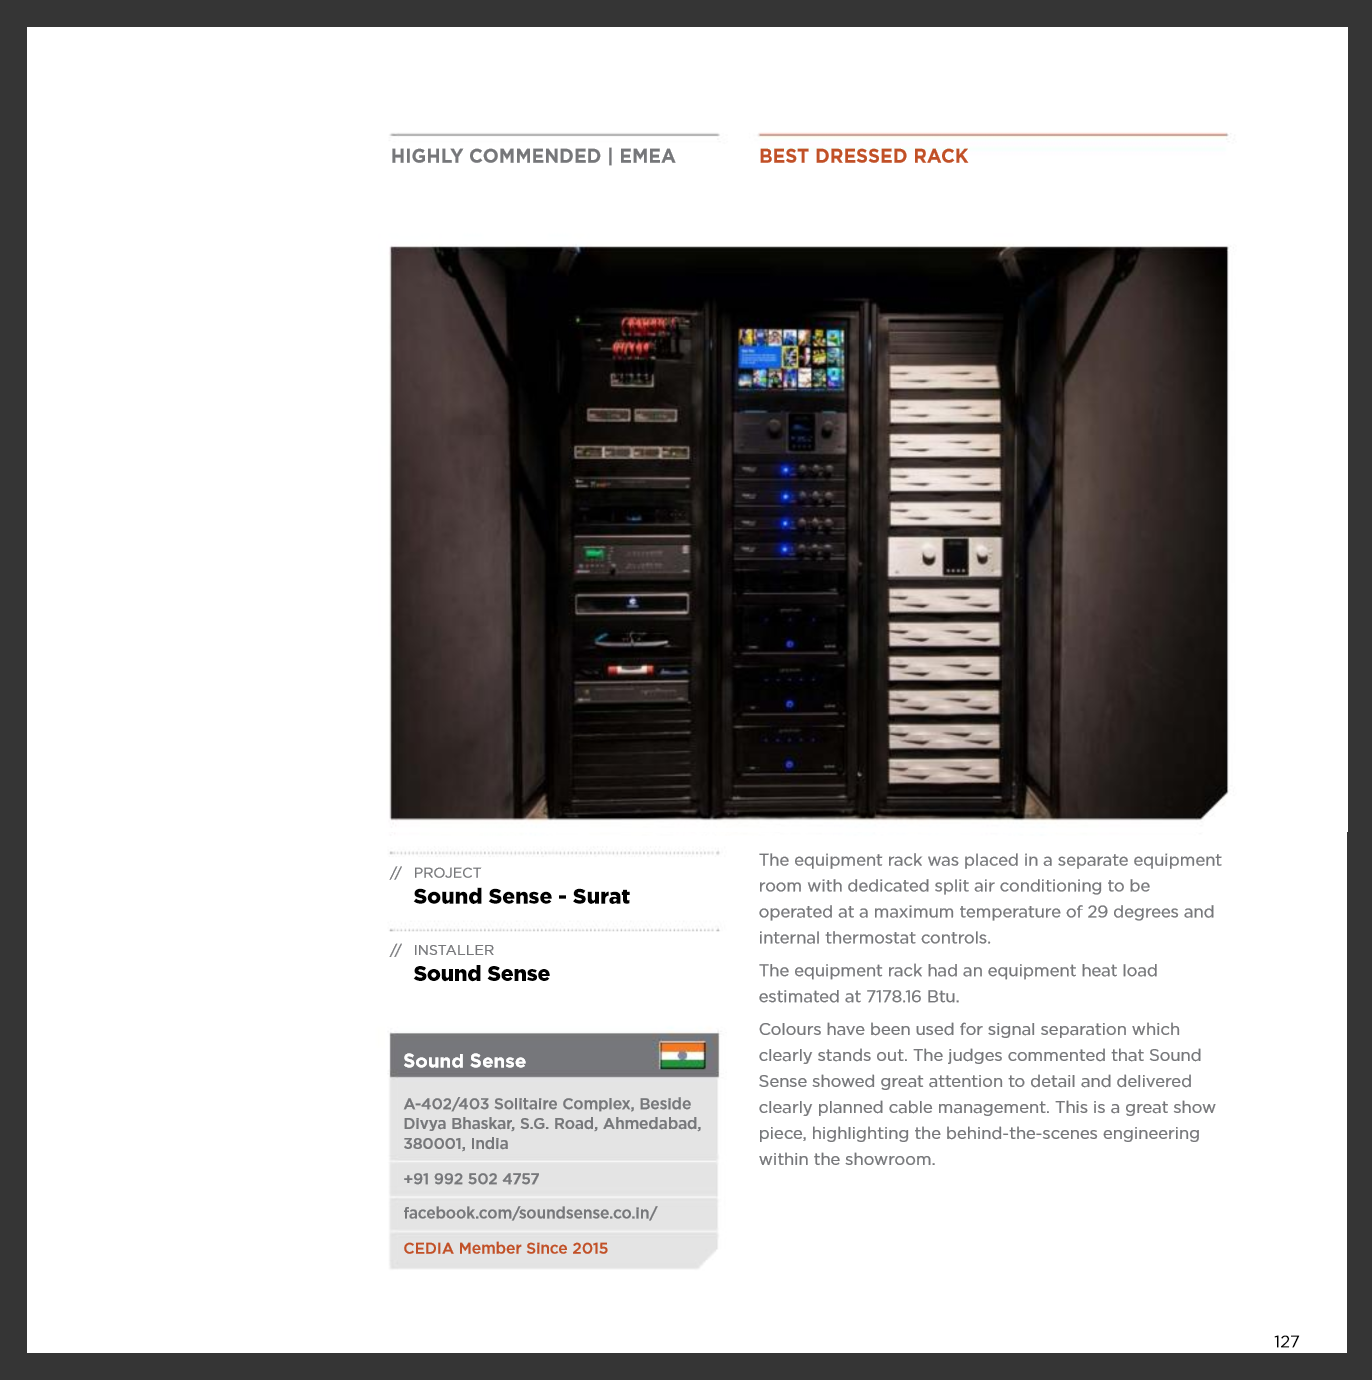 CEDIA-Highly Commended-Best Dressed Rack-EMEA.png